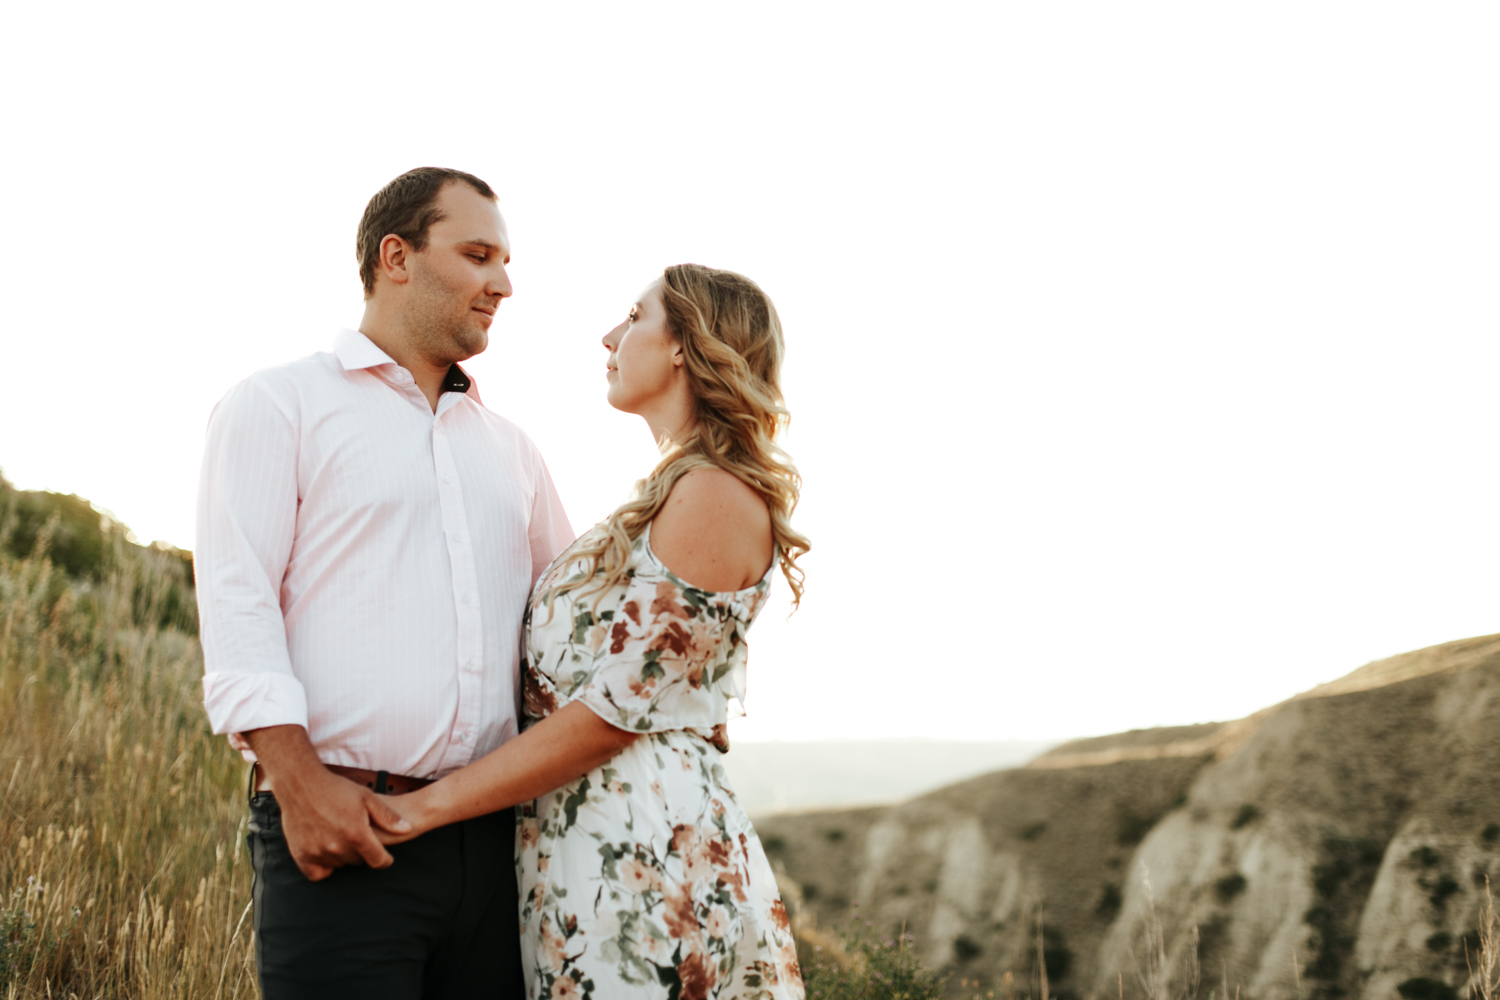 lethbridge-wedding-photographer-love-and-be-loved-photography-katie-kelli-engagement-picture-image-photo-43.jpg